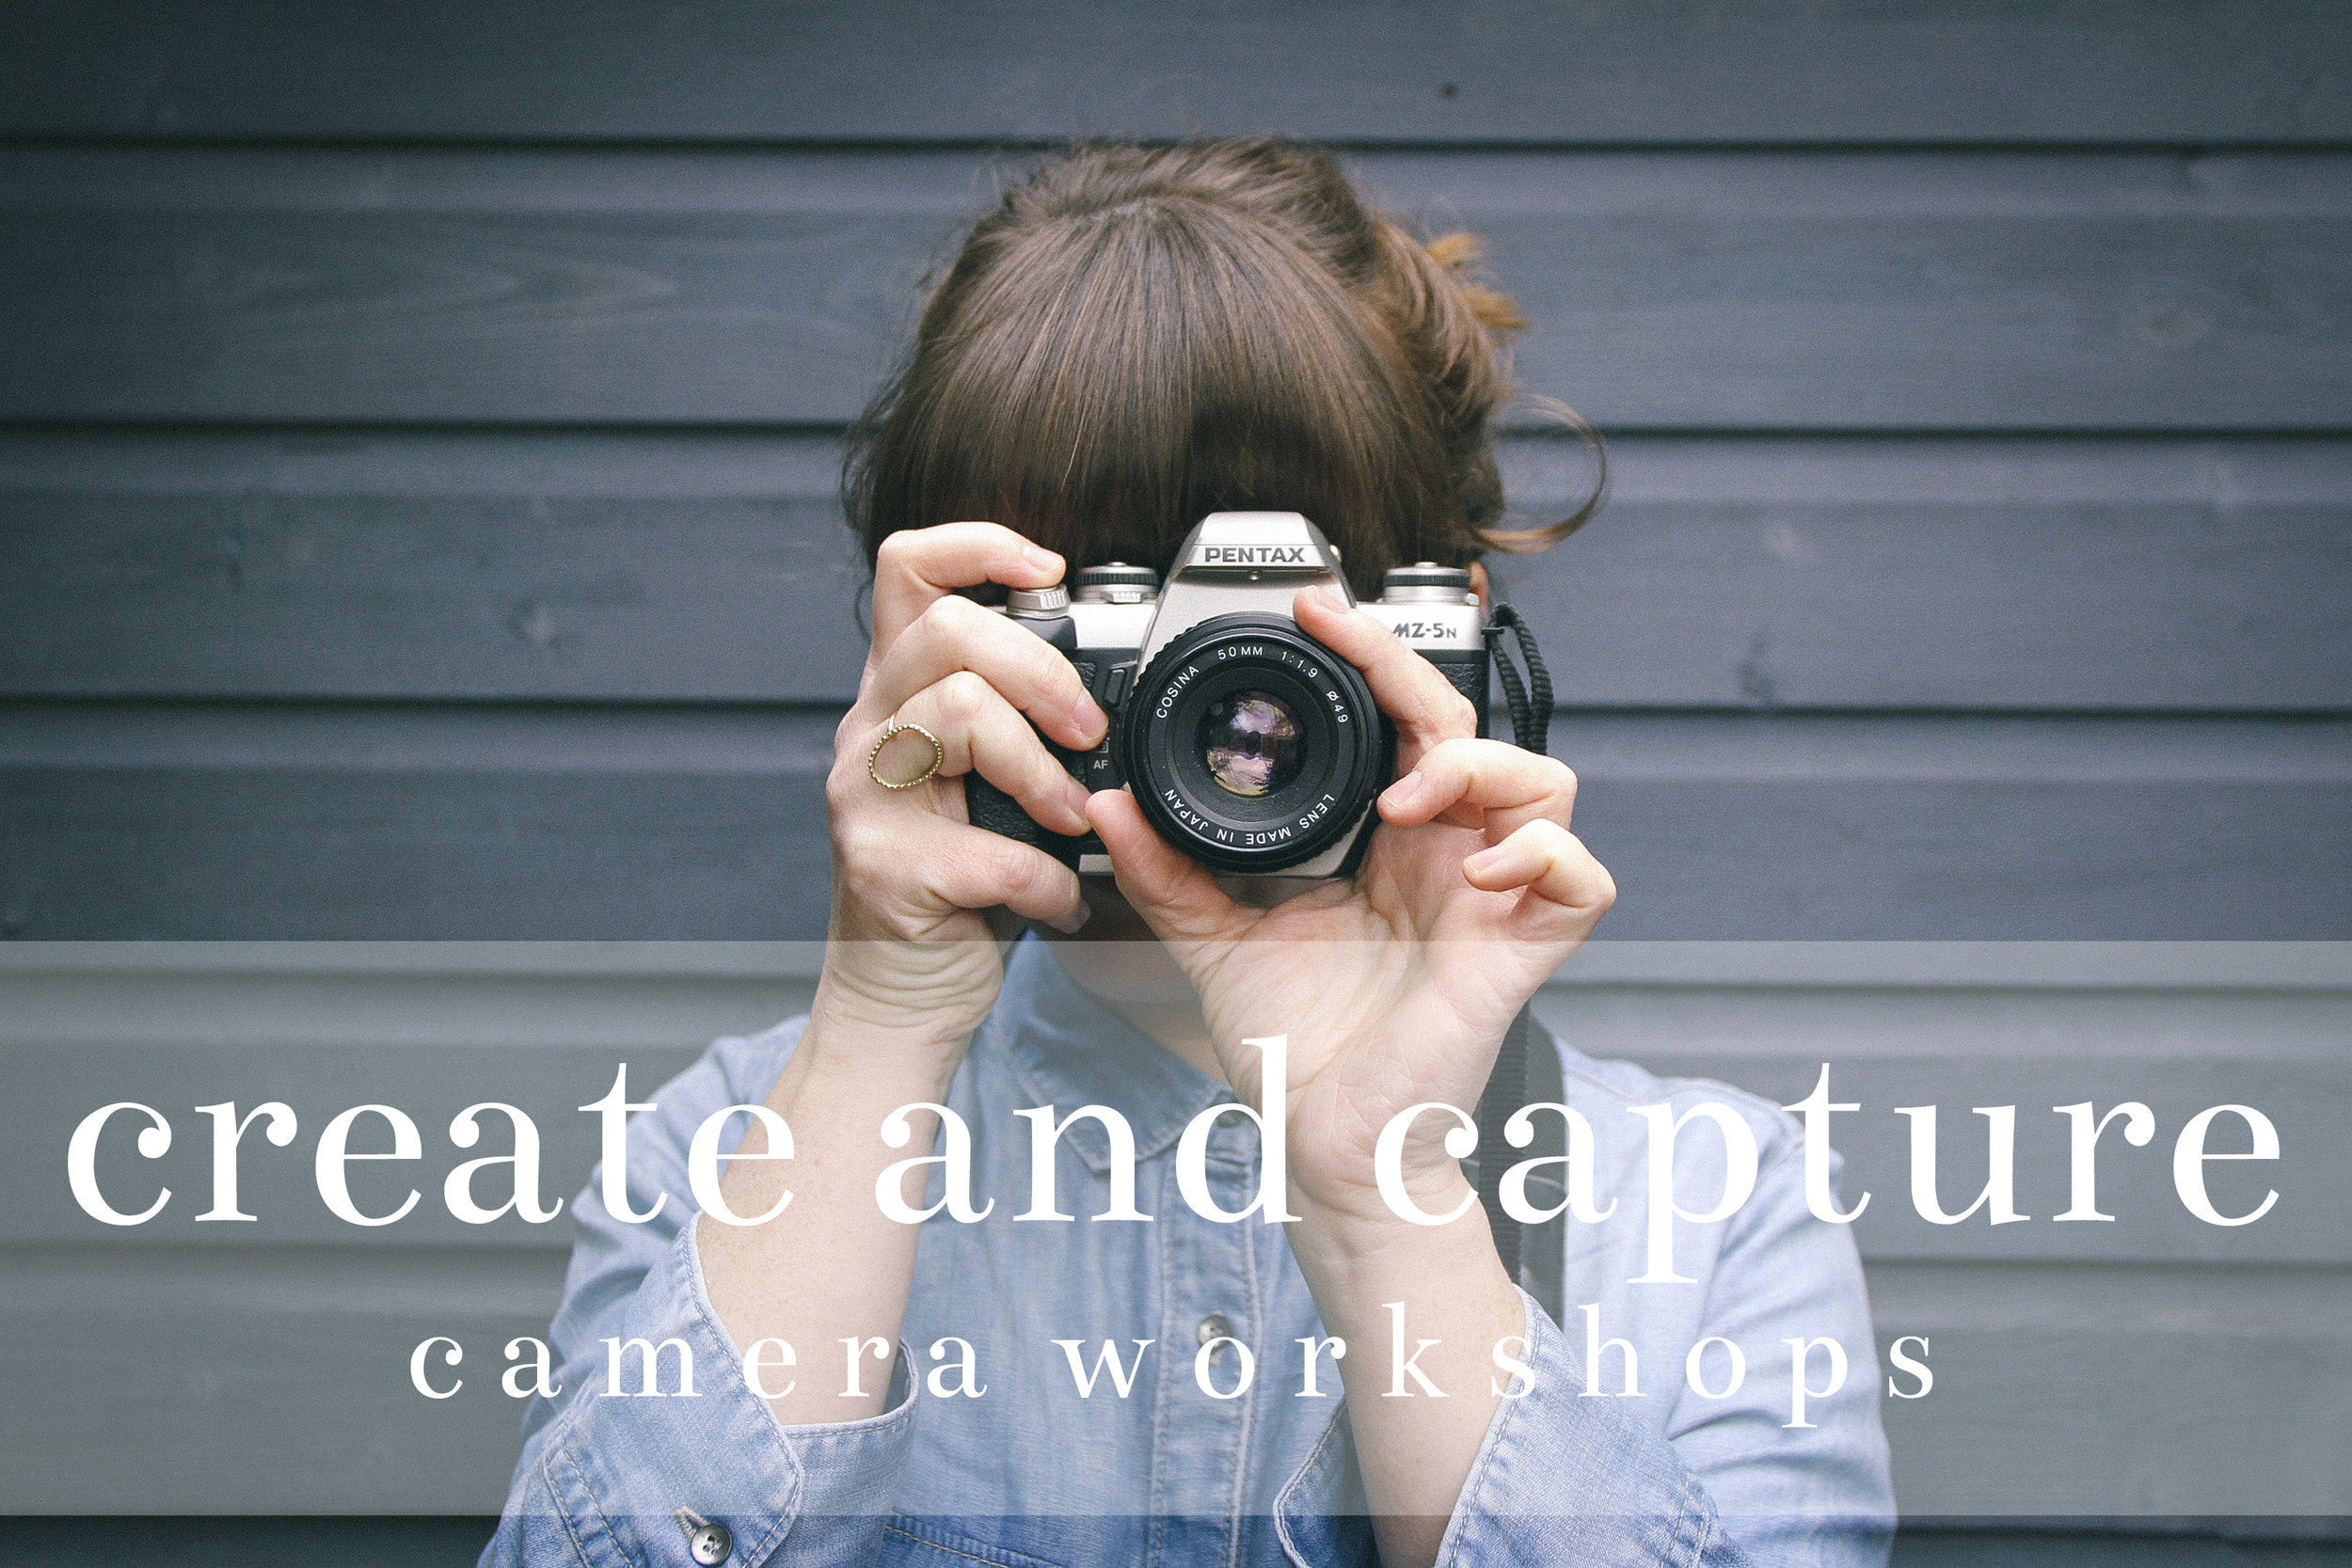 Create and Capture Camera Workshops with Carolyn Carter